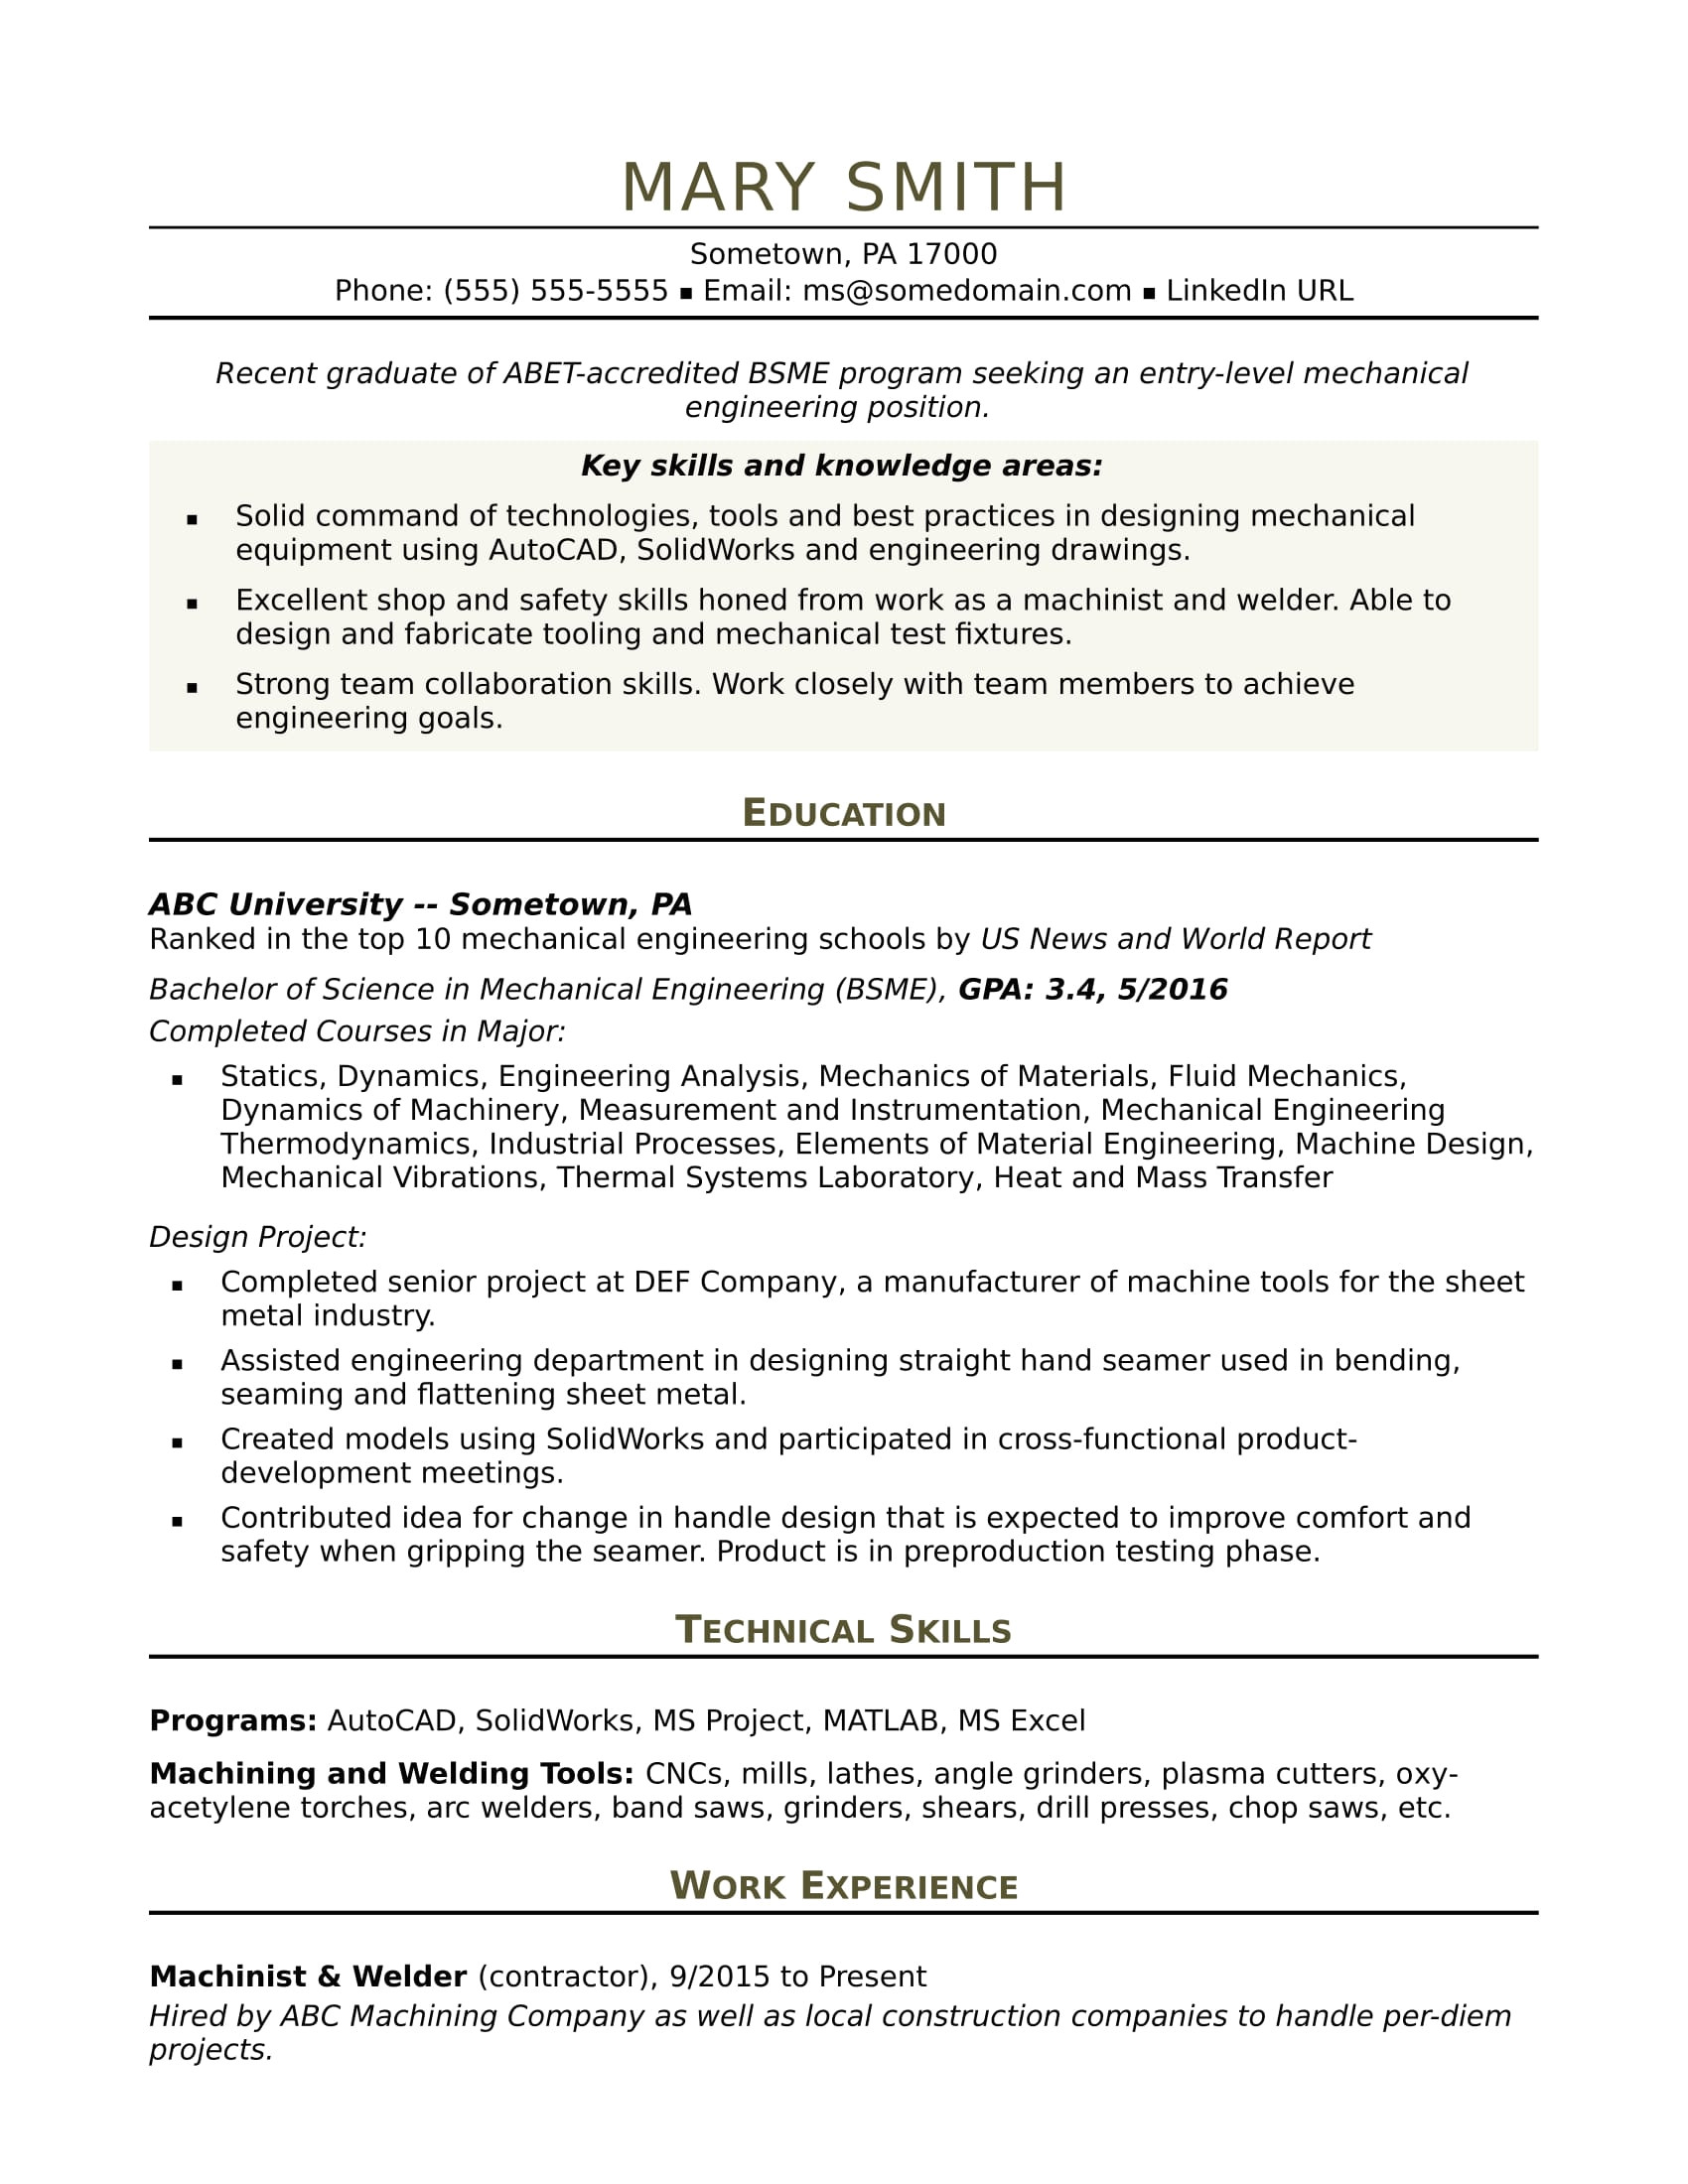 Project Engineer Resume Keywords Sample Resume for An Entry Level Mechanical Engineer